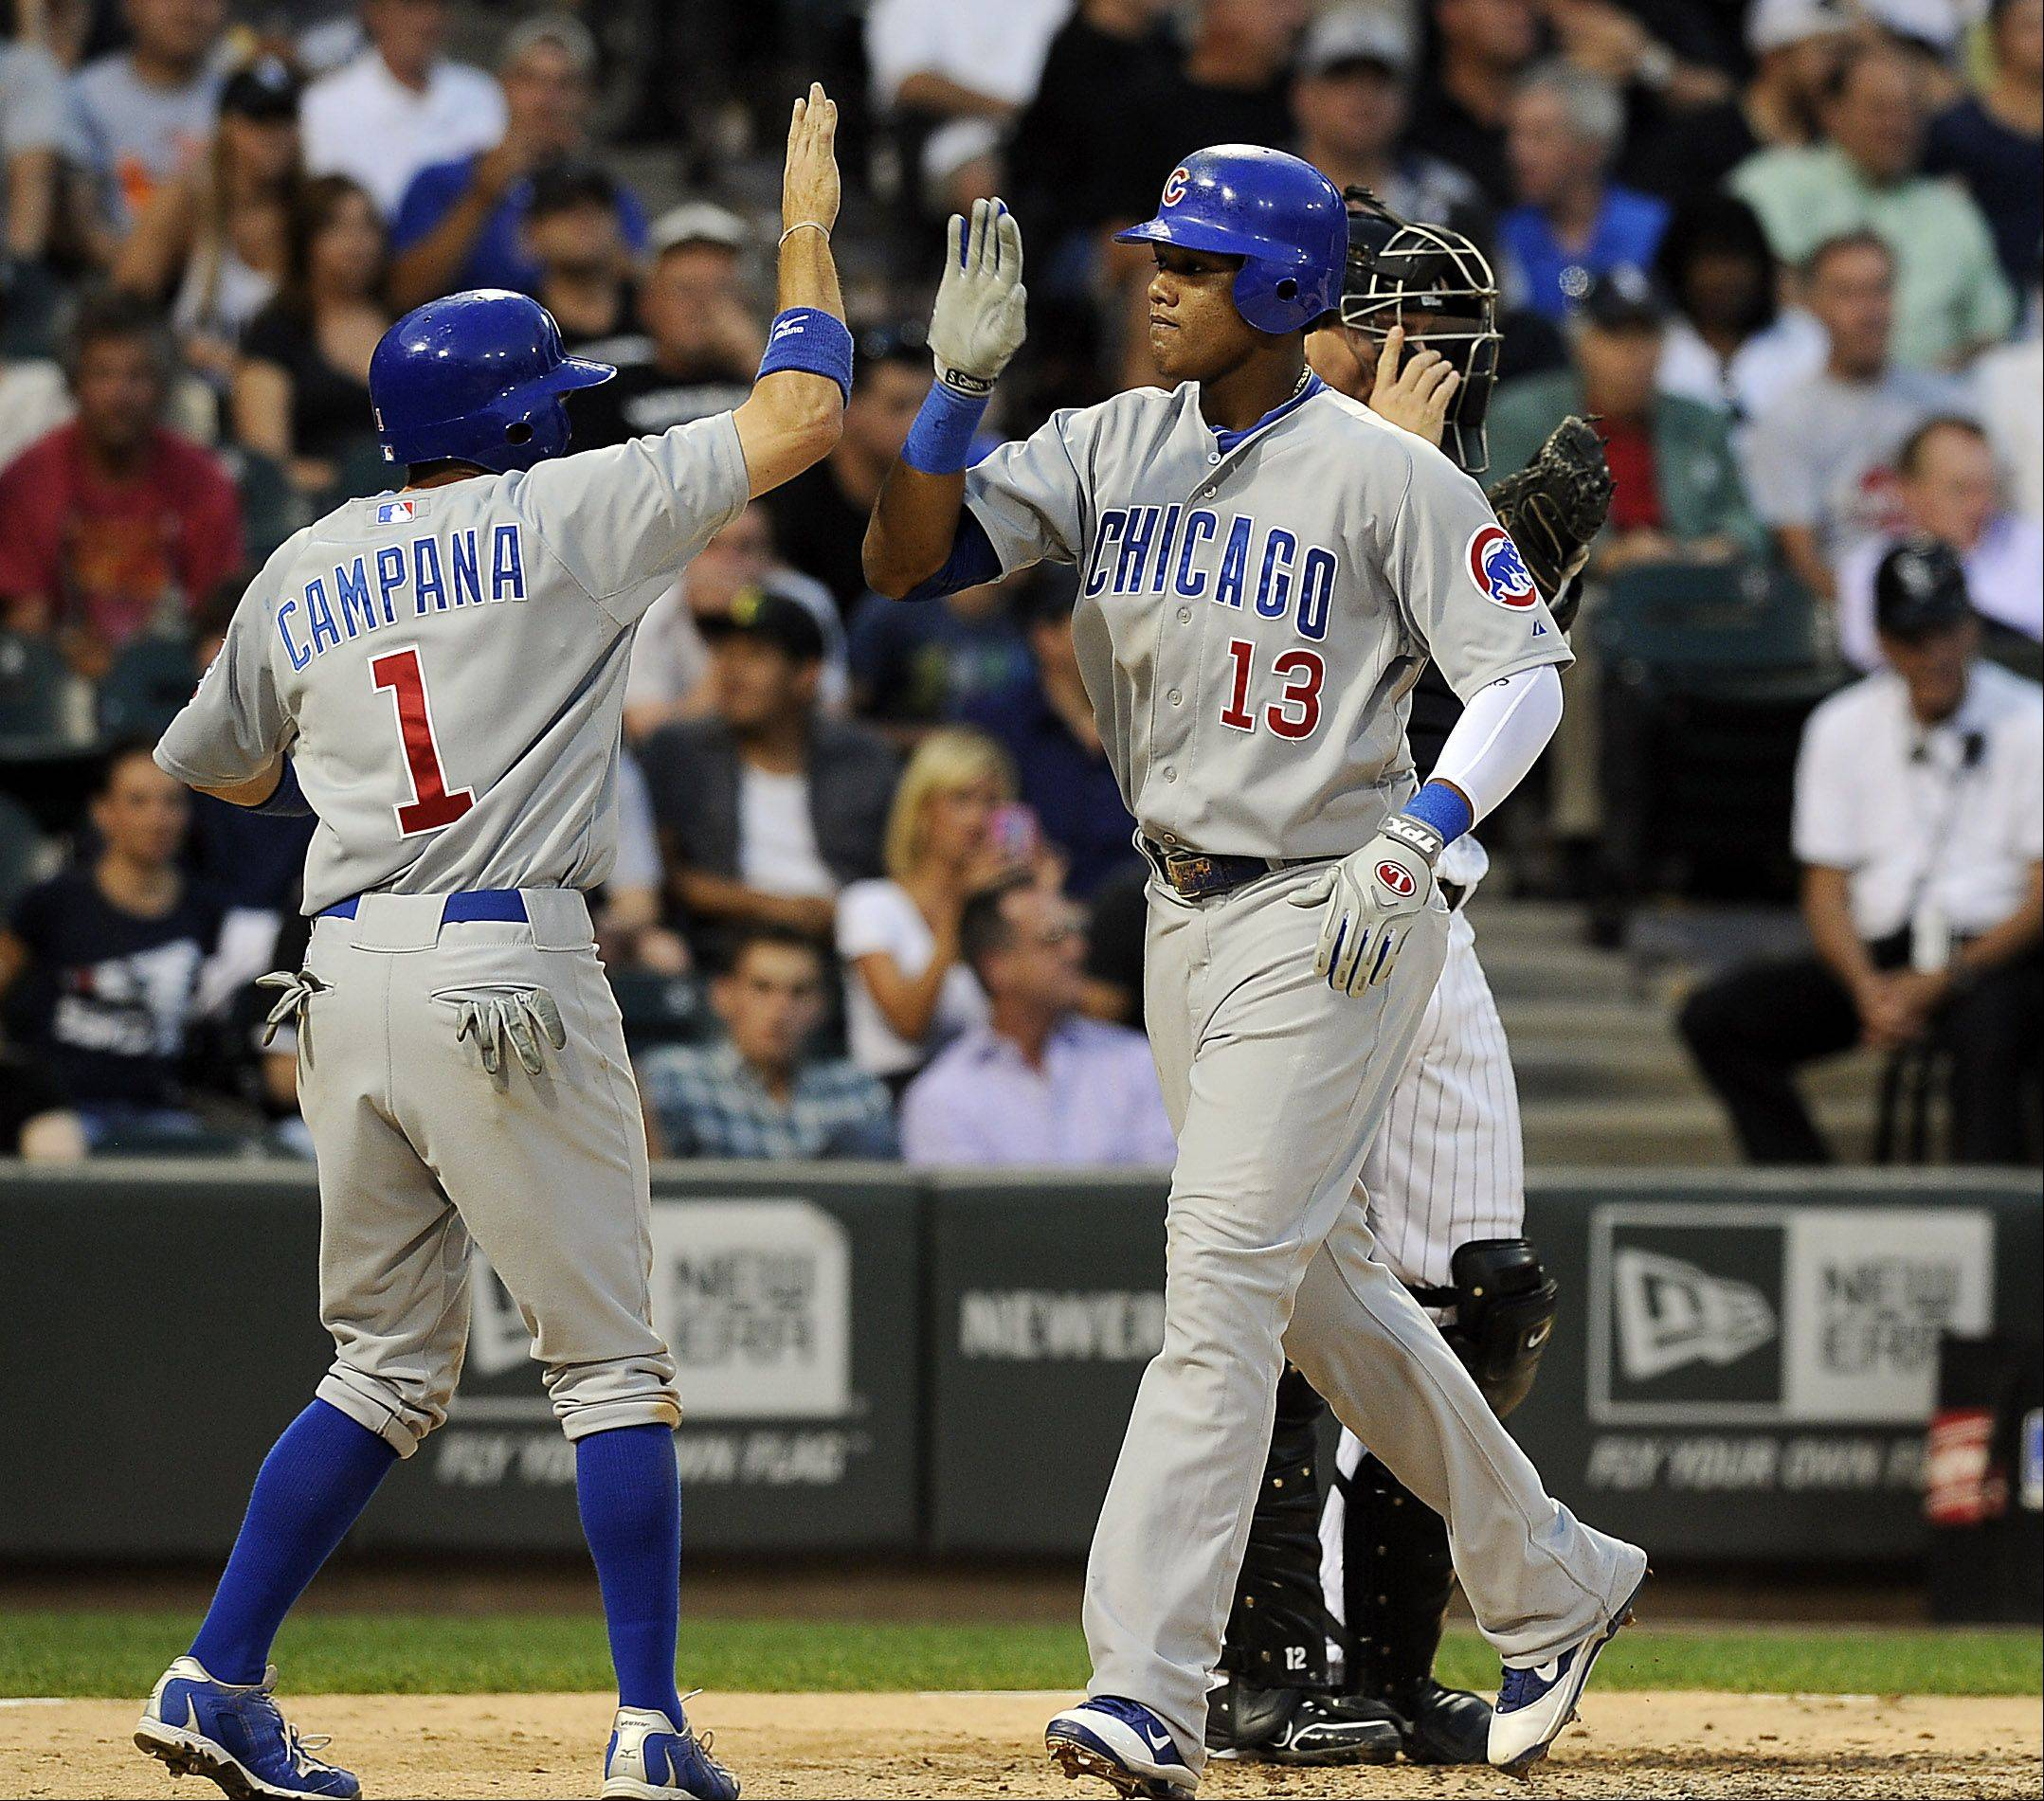 Cubs shortstop Starlin Castro celebrates after his fifth-inning homerun with teammate Tony Campana during a 12-3 victory over the White Sox on Monday at U.S. Cellular Field.